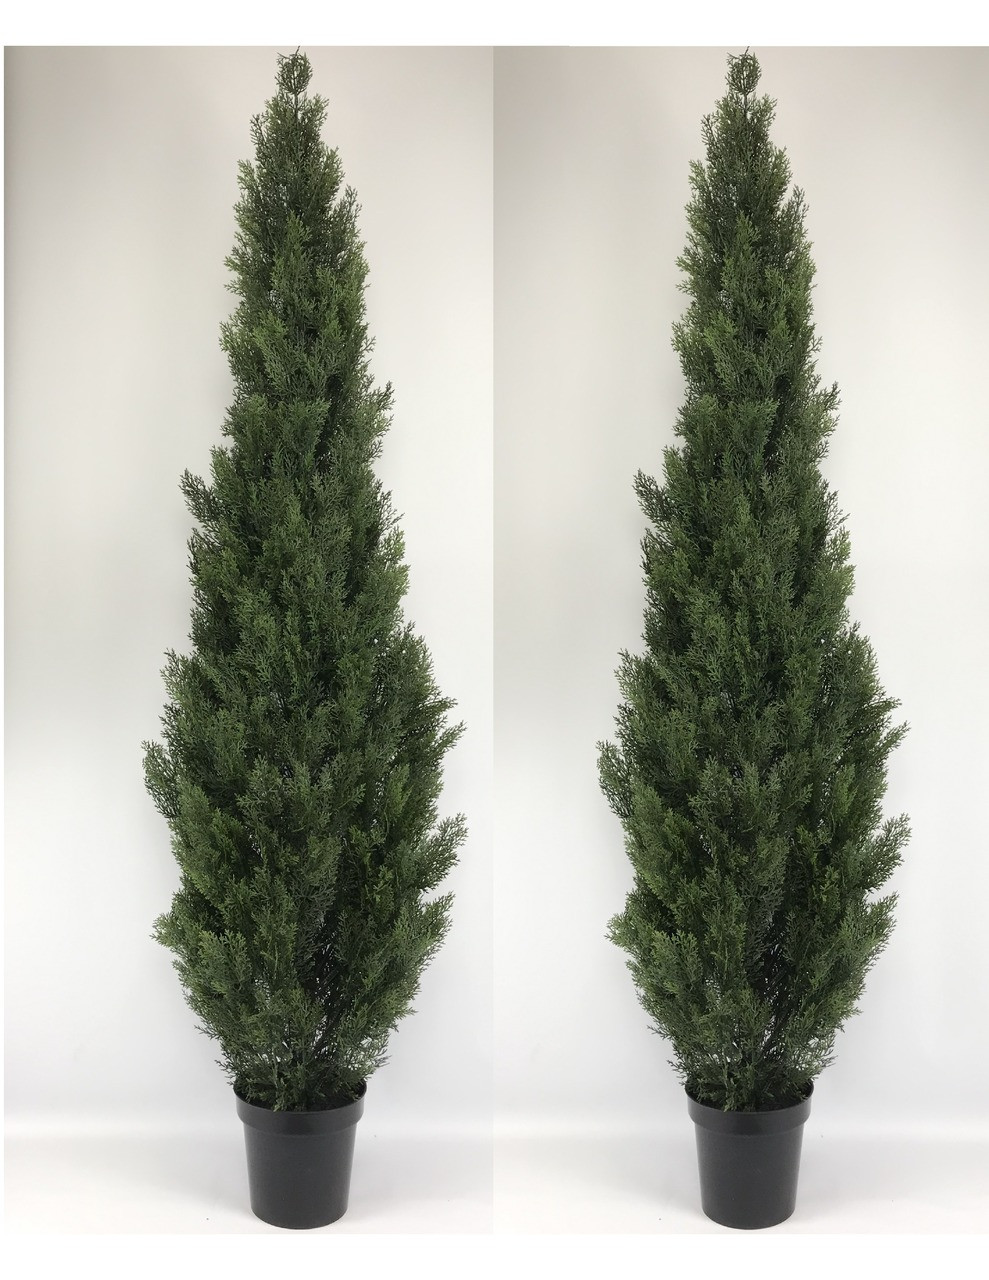 Artificial Topiary Plants For Outdoors Silk Tree Warehouse